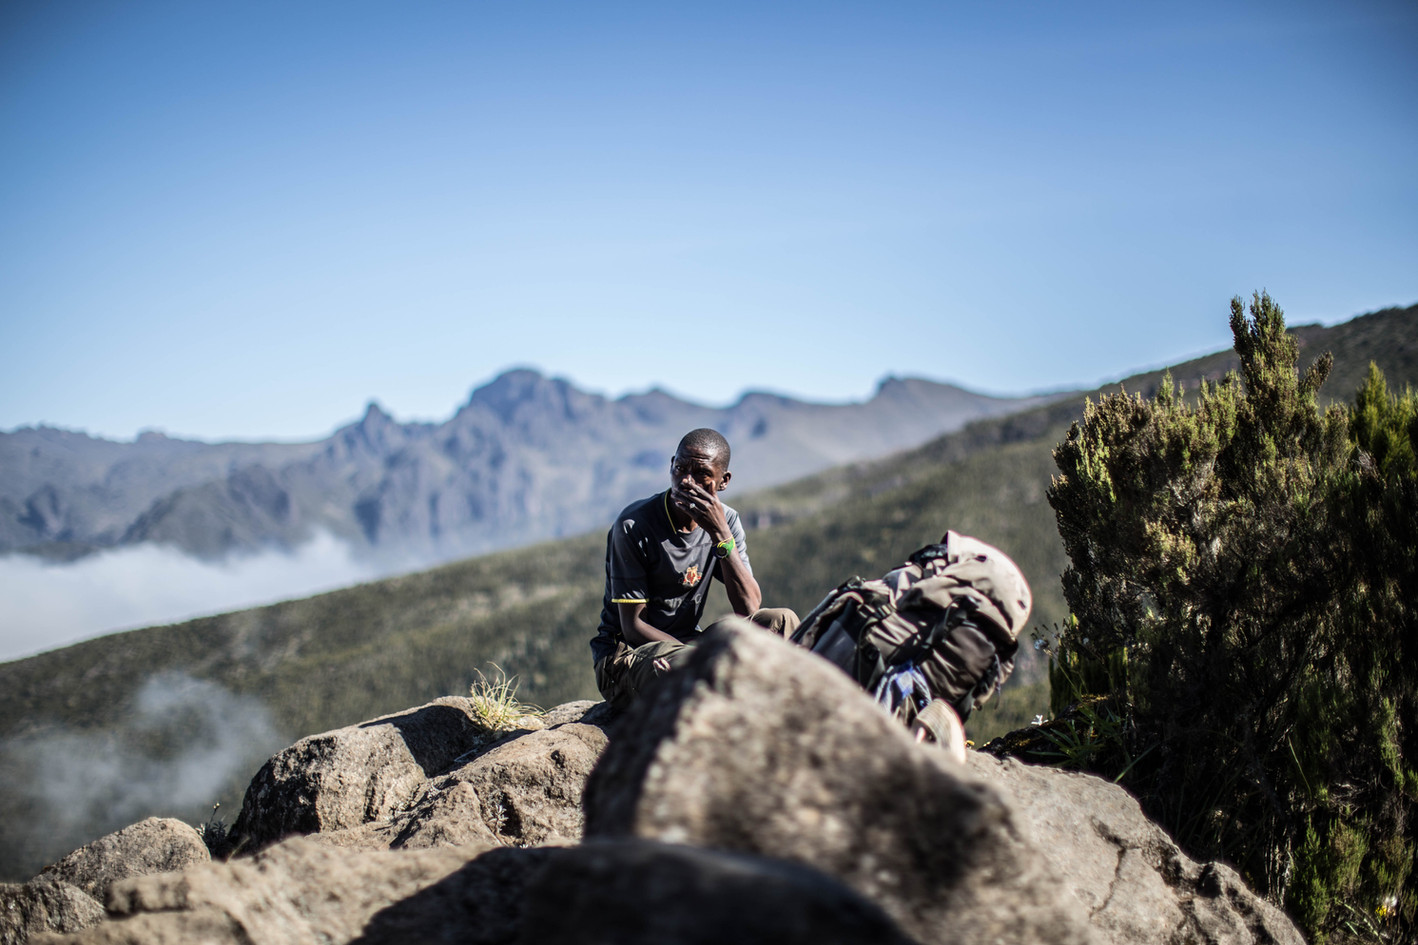 A Kilimanjaro porter takes a smoke break near the Machame camp, with the Shira plateau behind him.